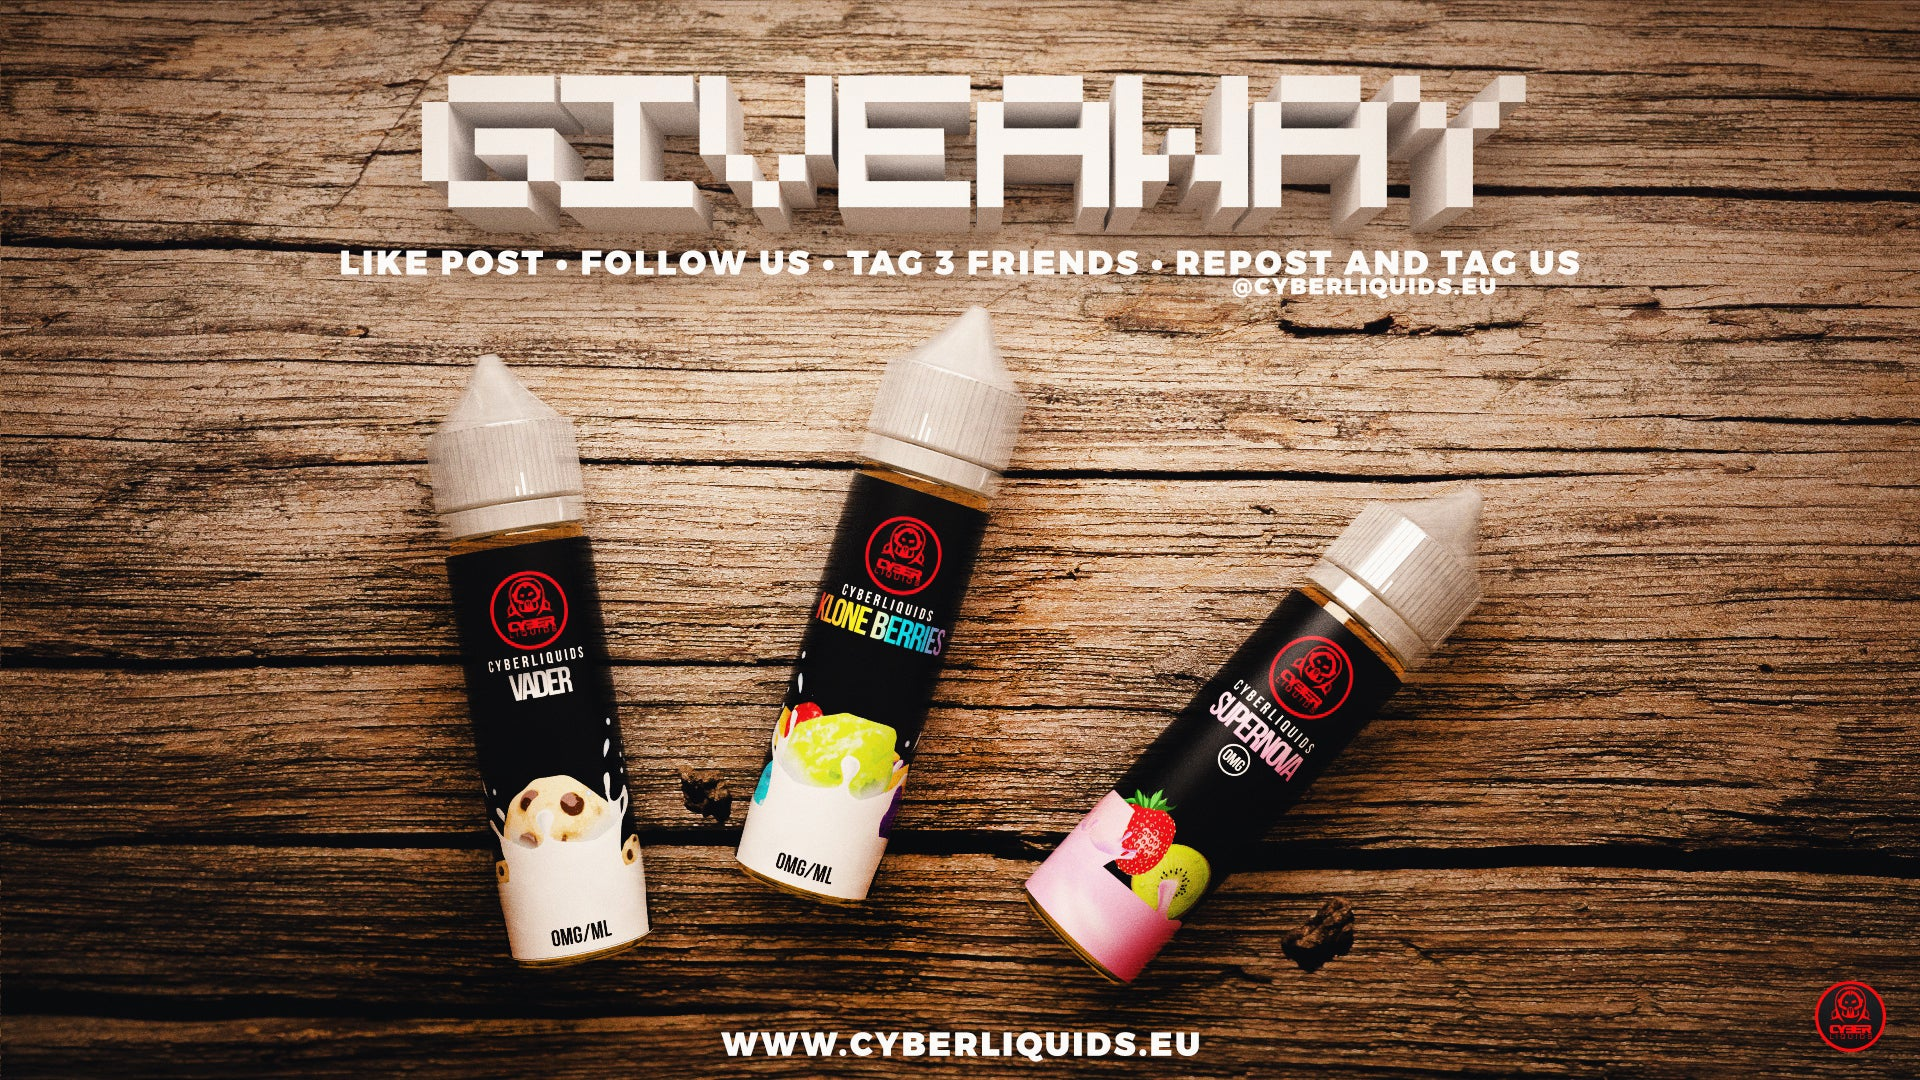 Cyberliquids.eu is doing a Vape Juice Giveaway!